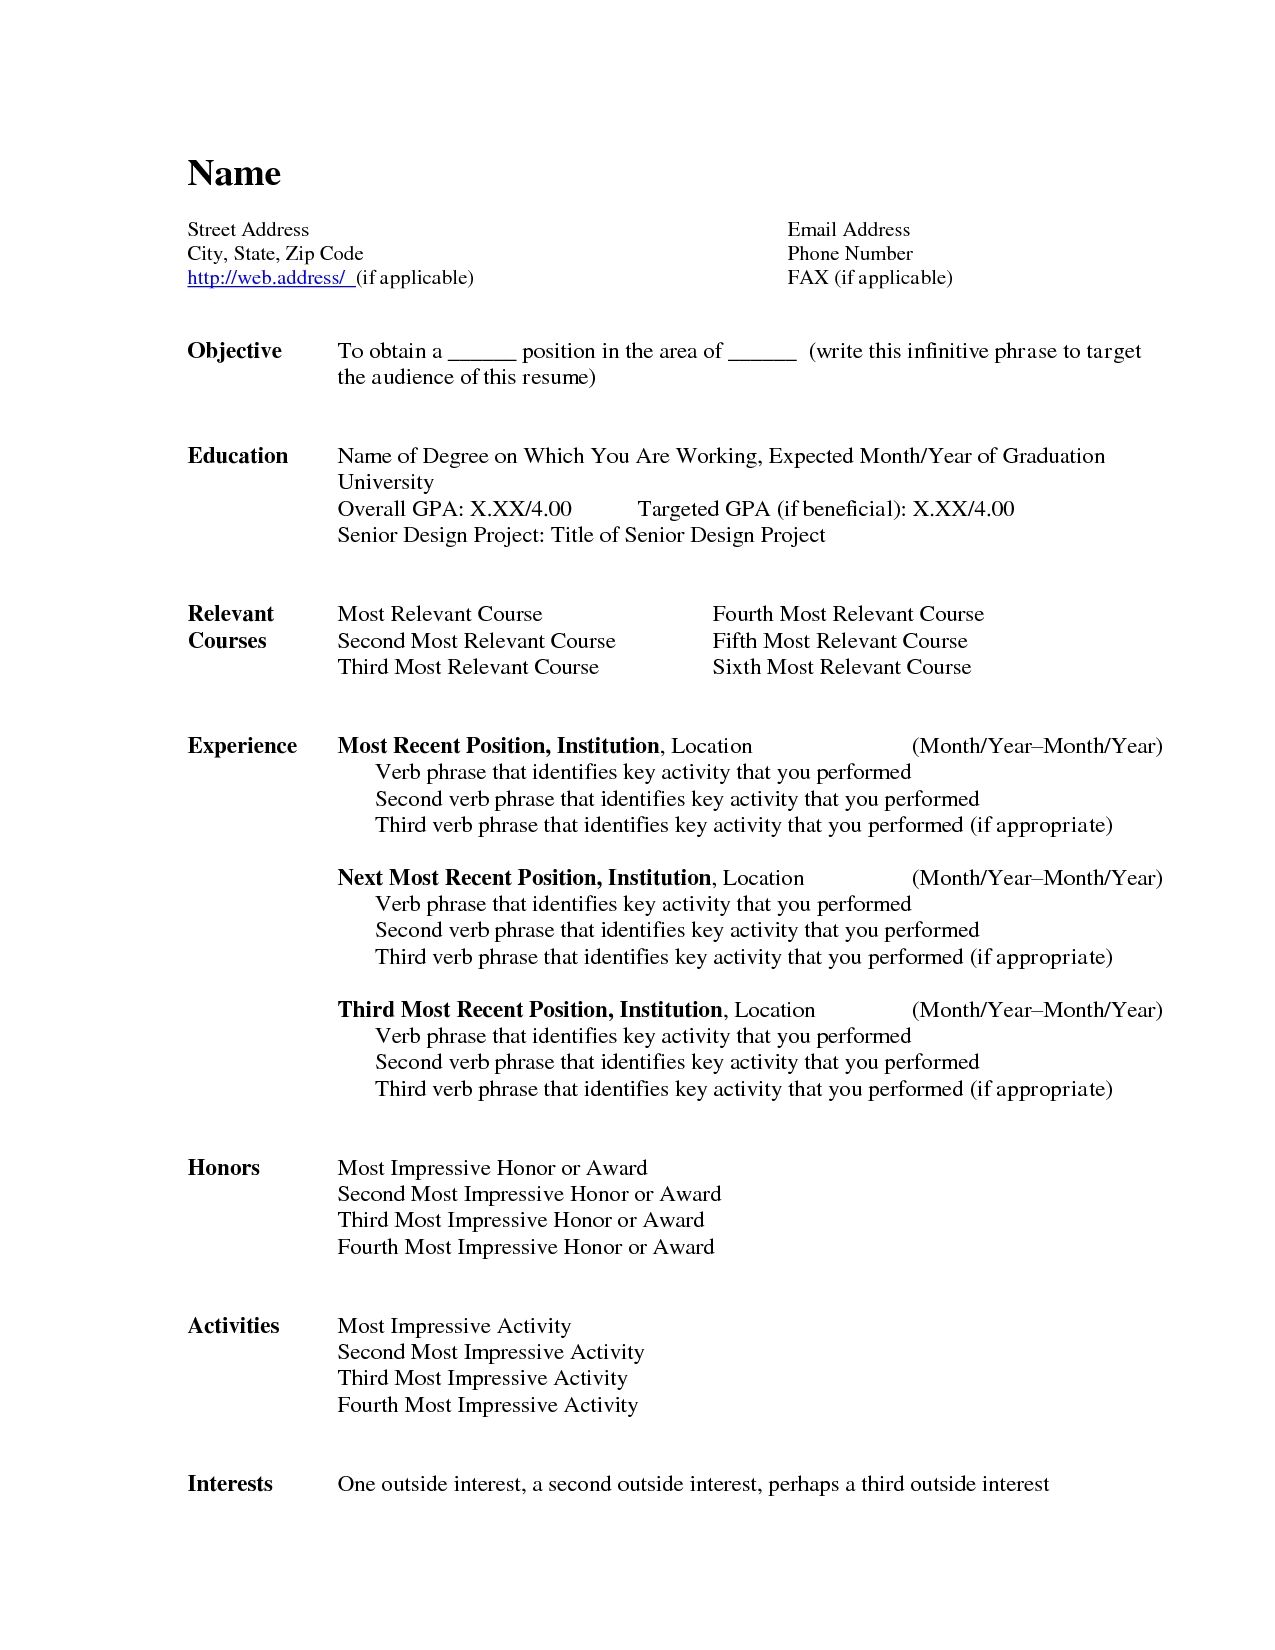 Photo Ms Word Resume Format Images The Ms Word Resume Format  Word Resume Format